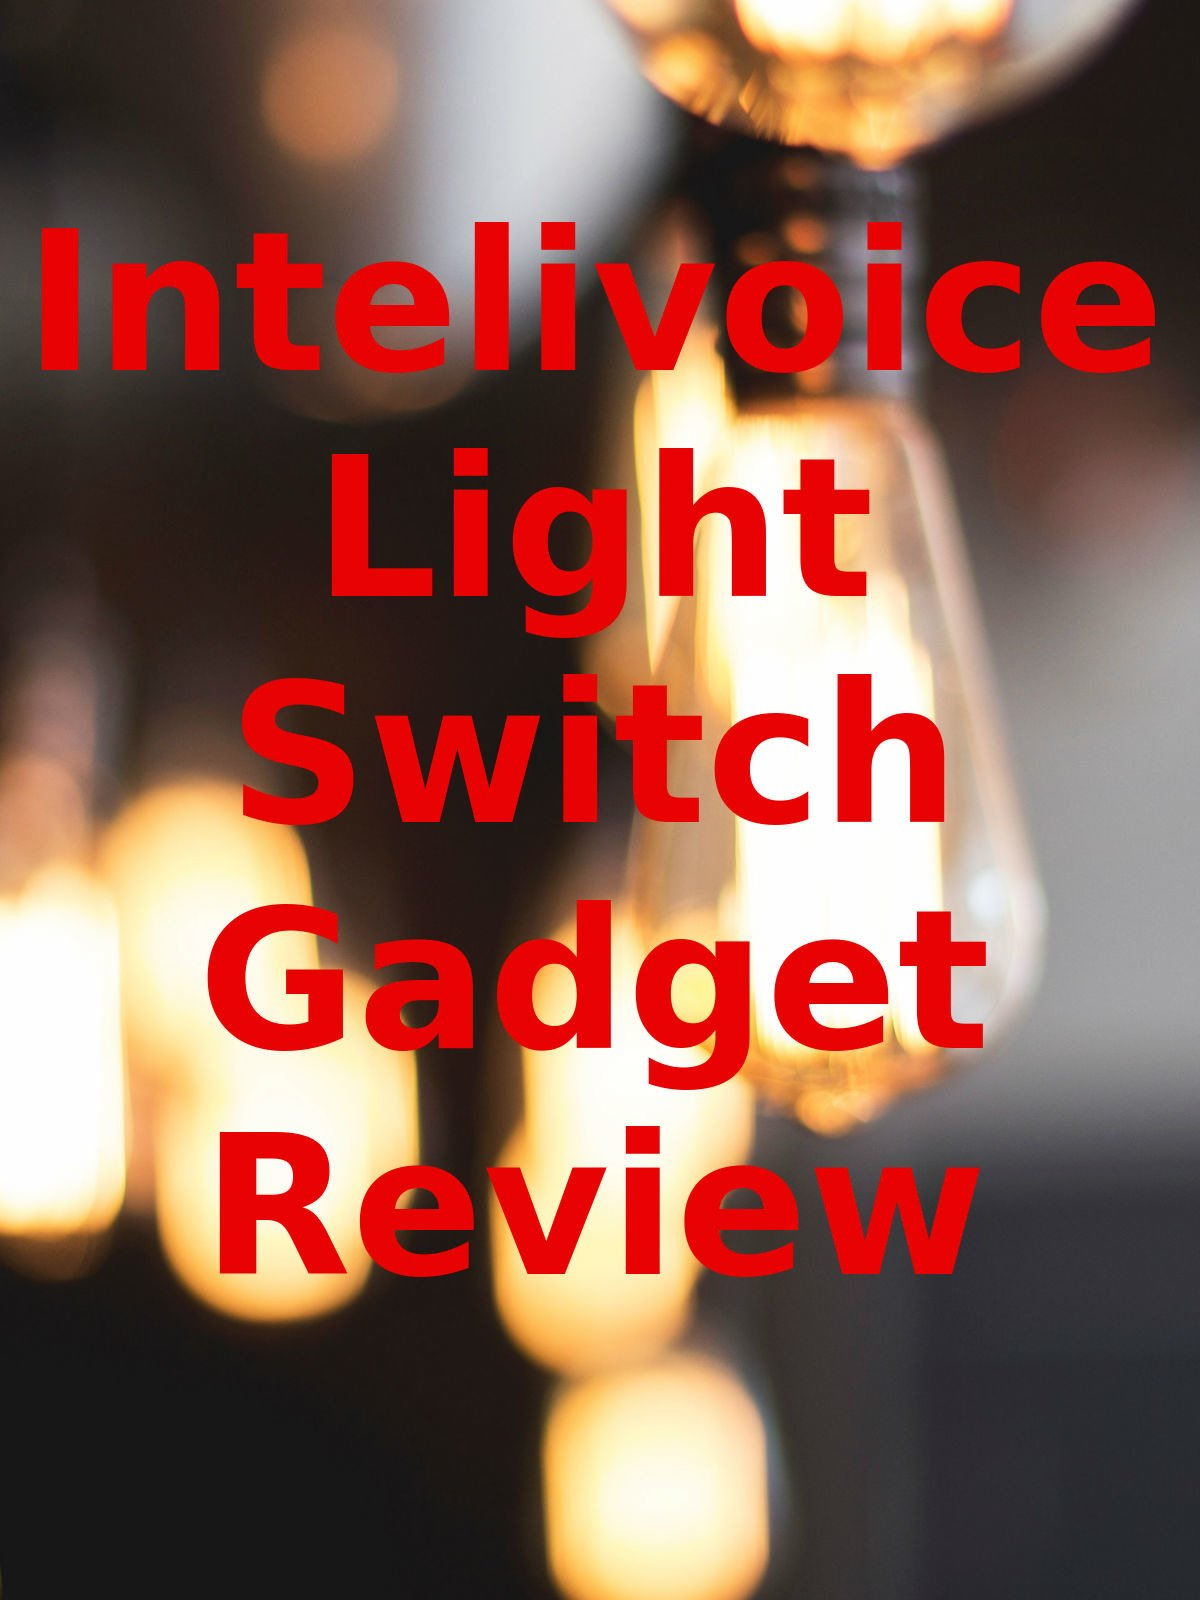 Review: Intelivoice Light Switch Gadget Review